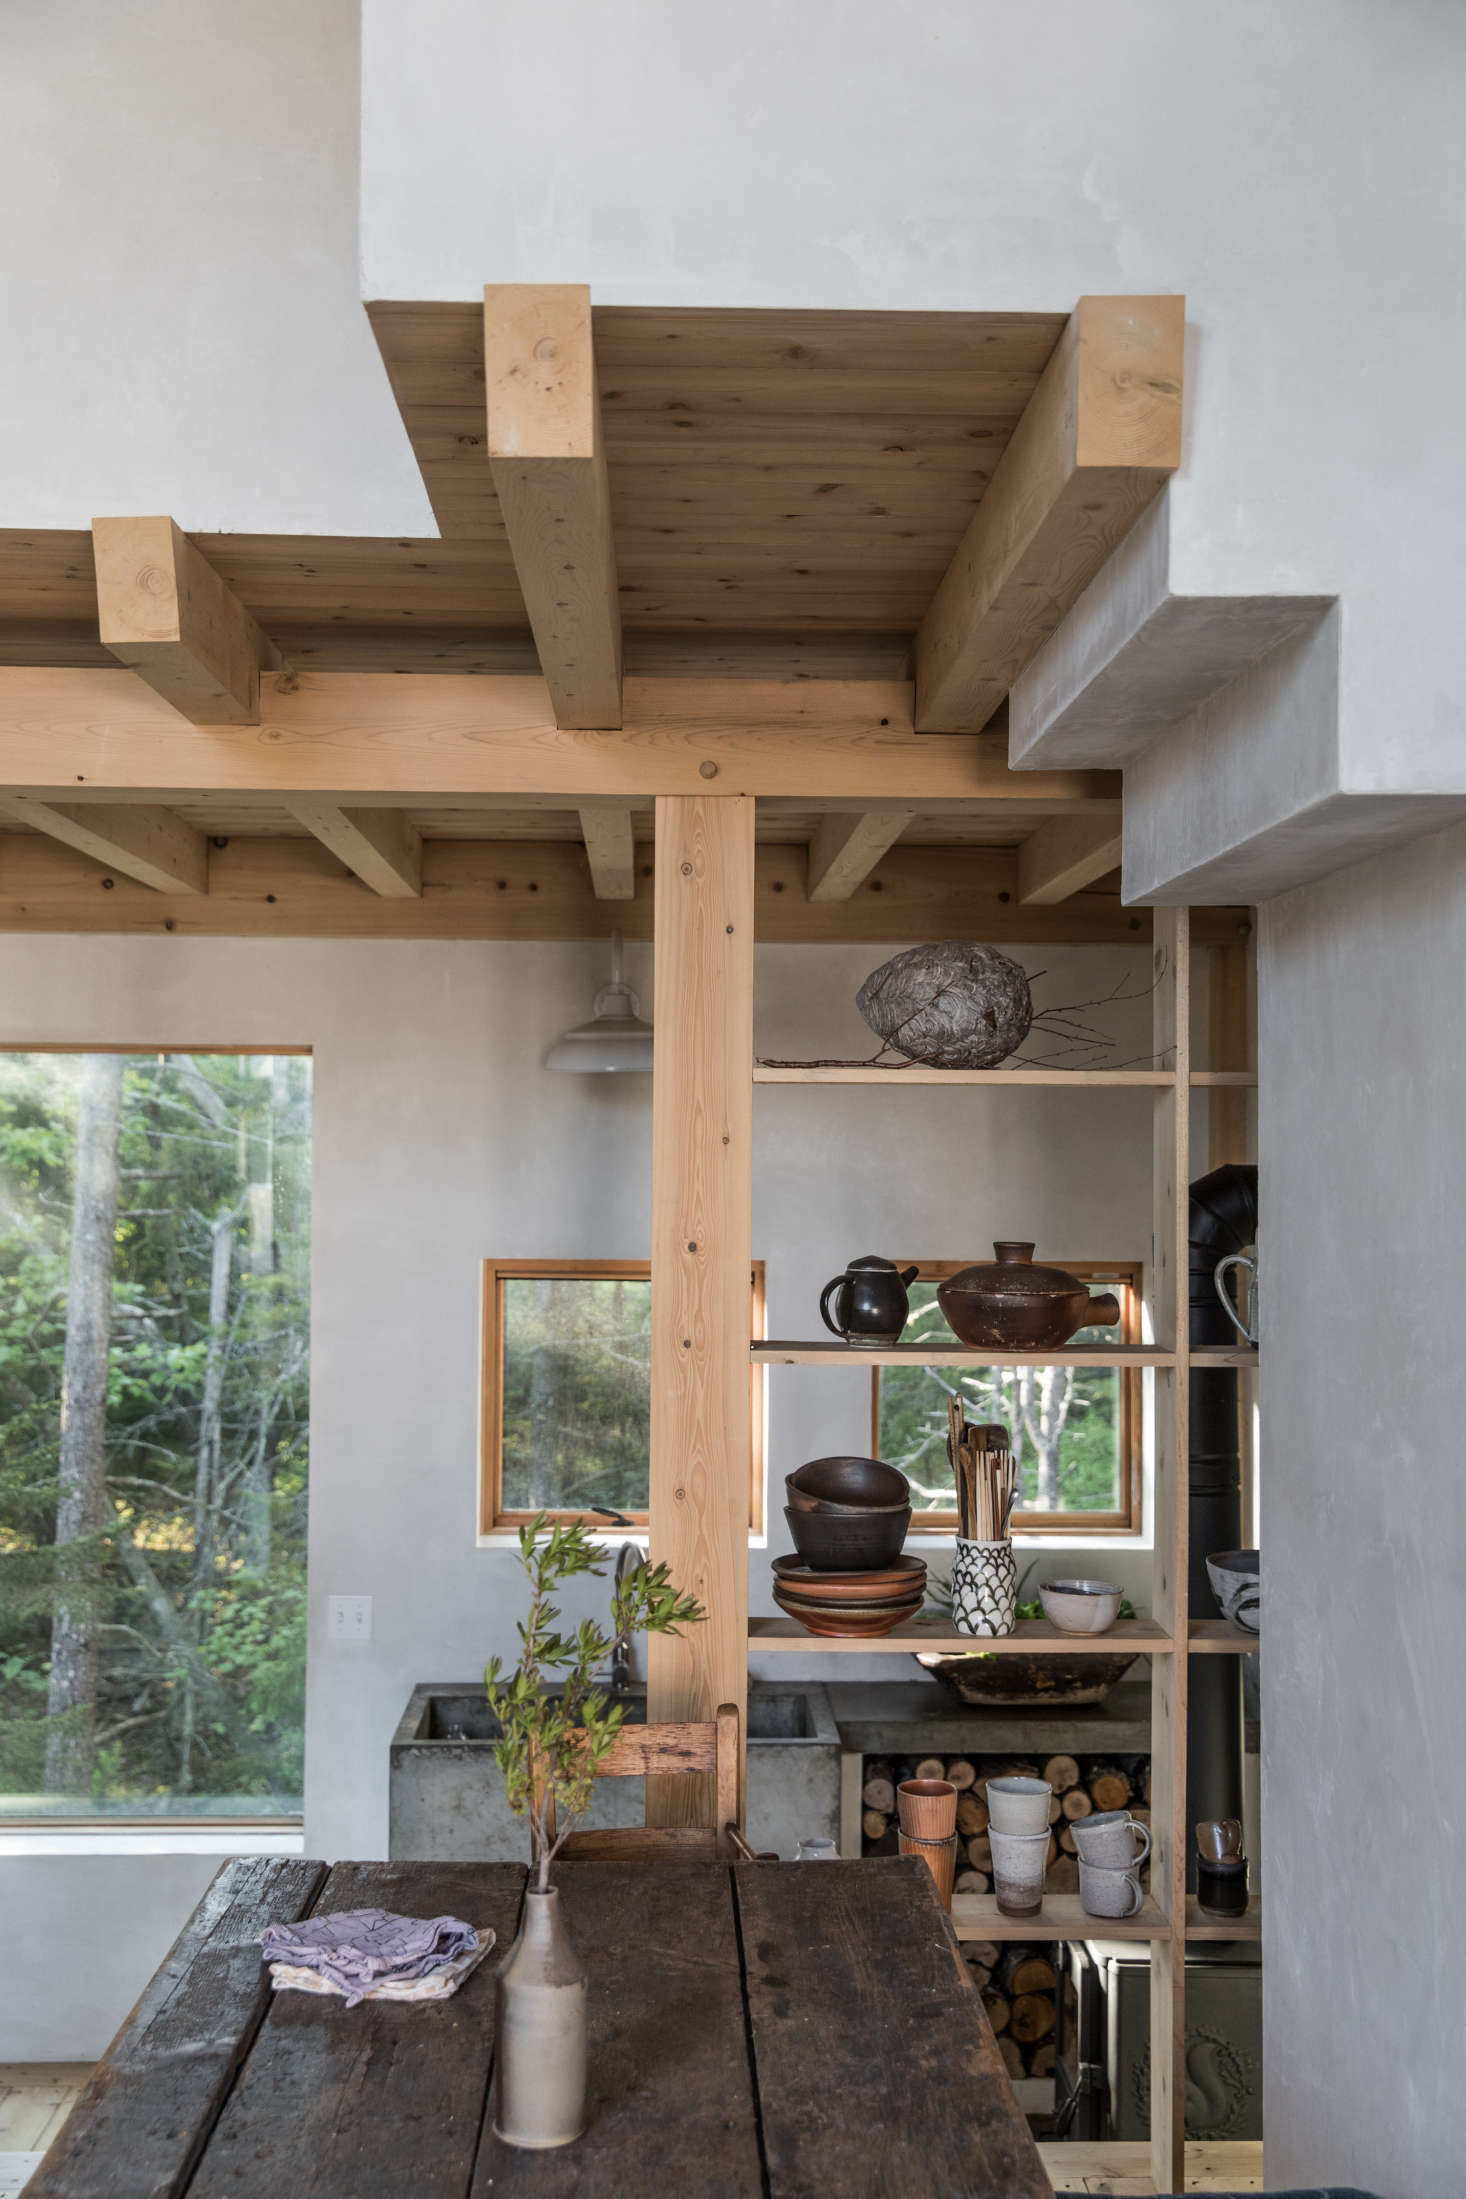 Open cedar shelves create a divider between the dining room and kitchen and display earth-toned ceramics.